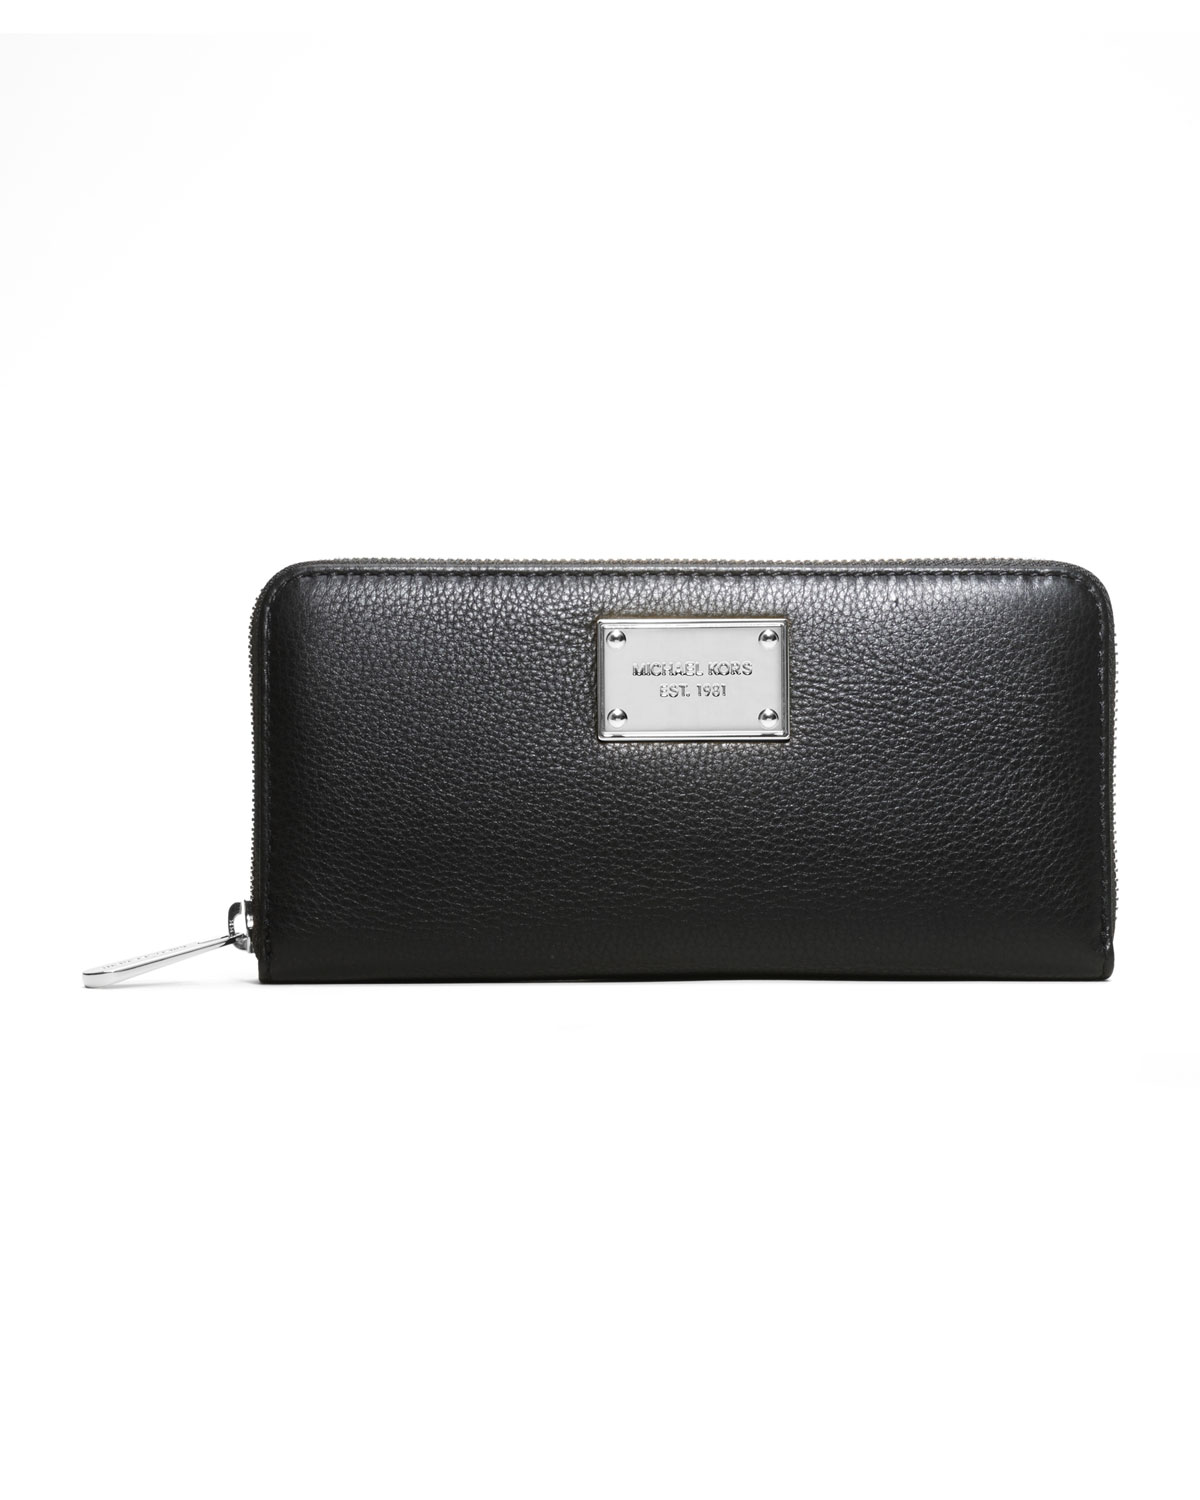 36235a7a13ff Black Pebbled Leather Wallet Michael Kors | Stanford Center for ...